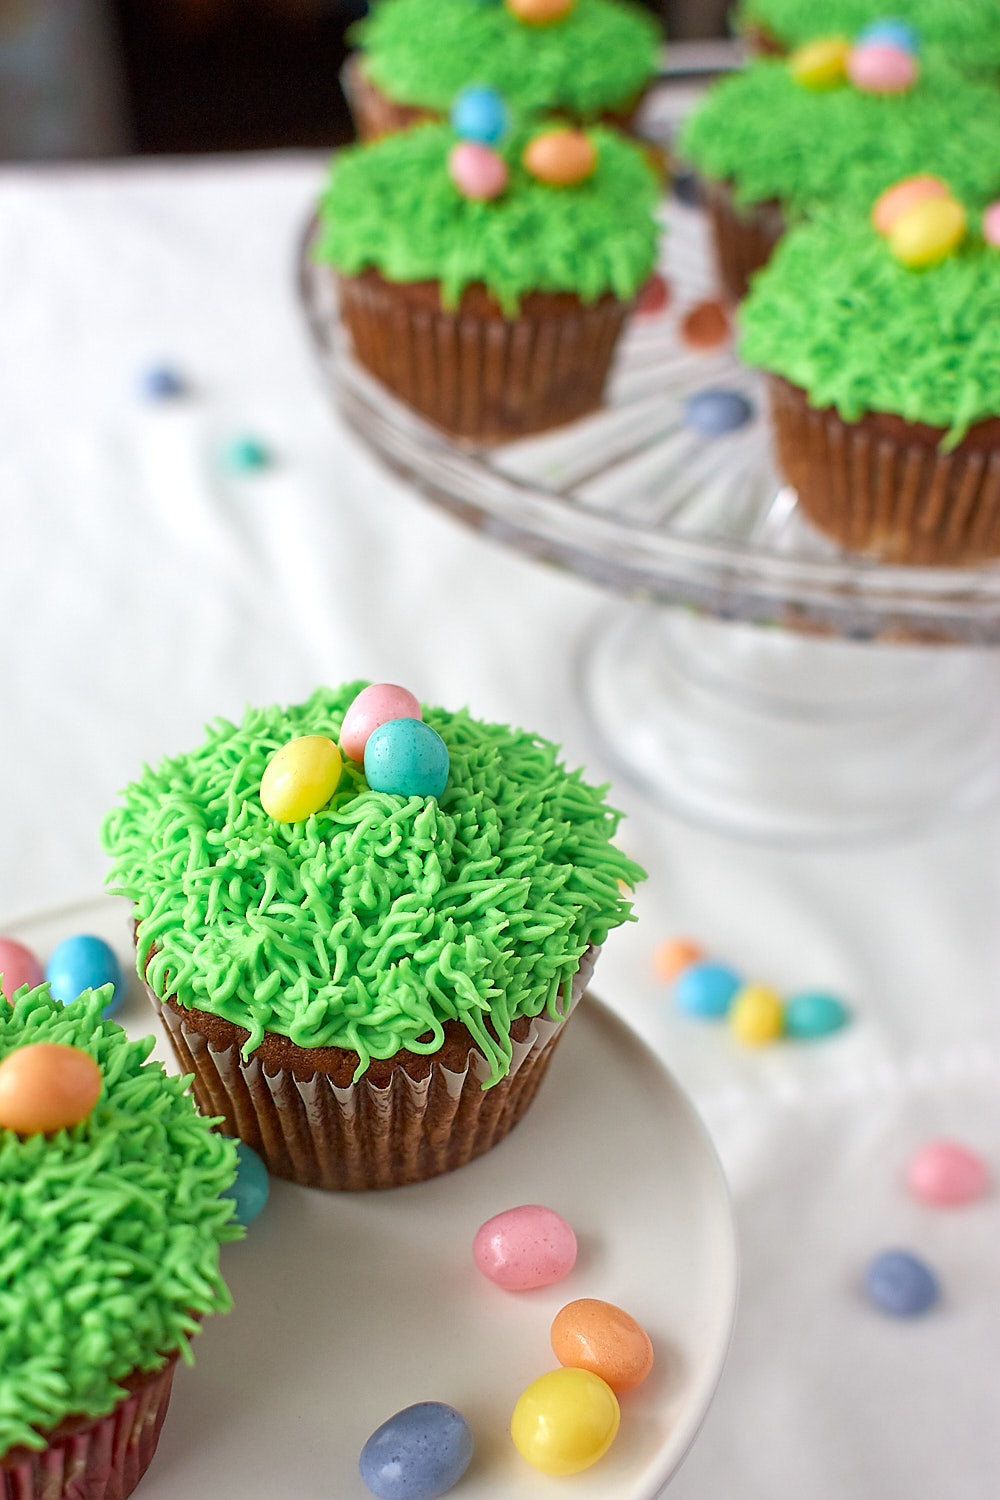 Carrot cupcakes with green grass frosting and jellybeans on a stand.